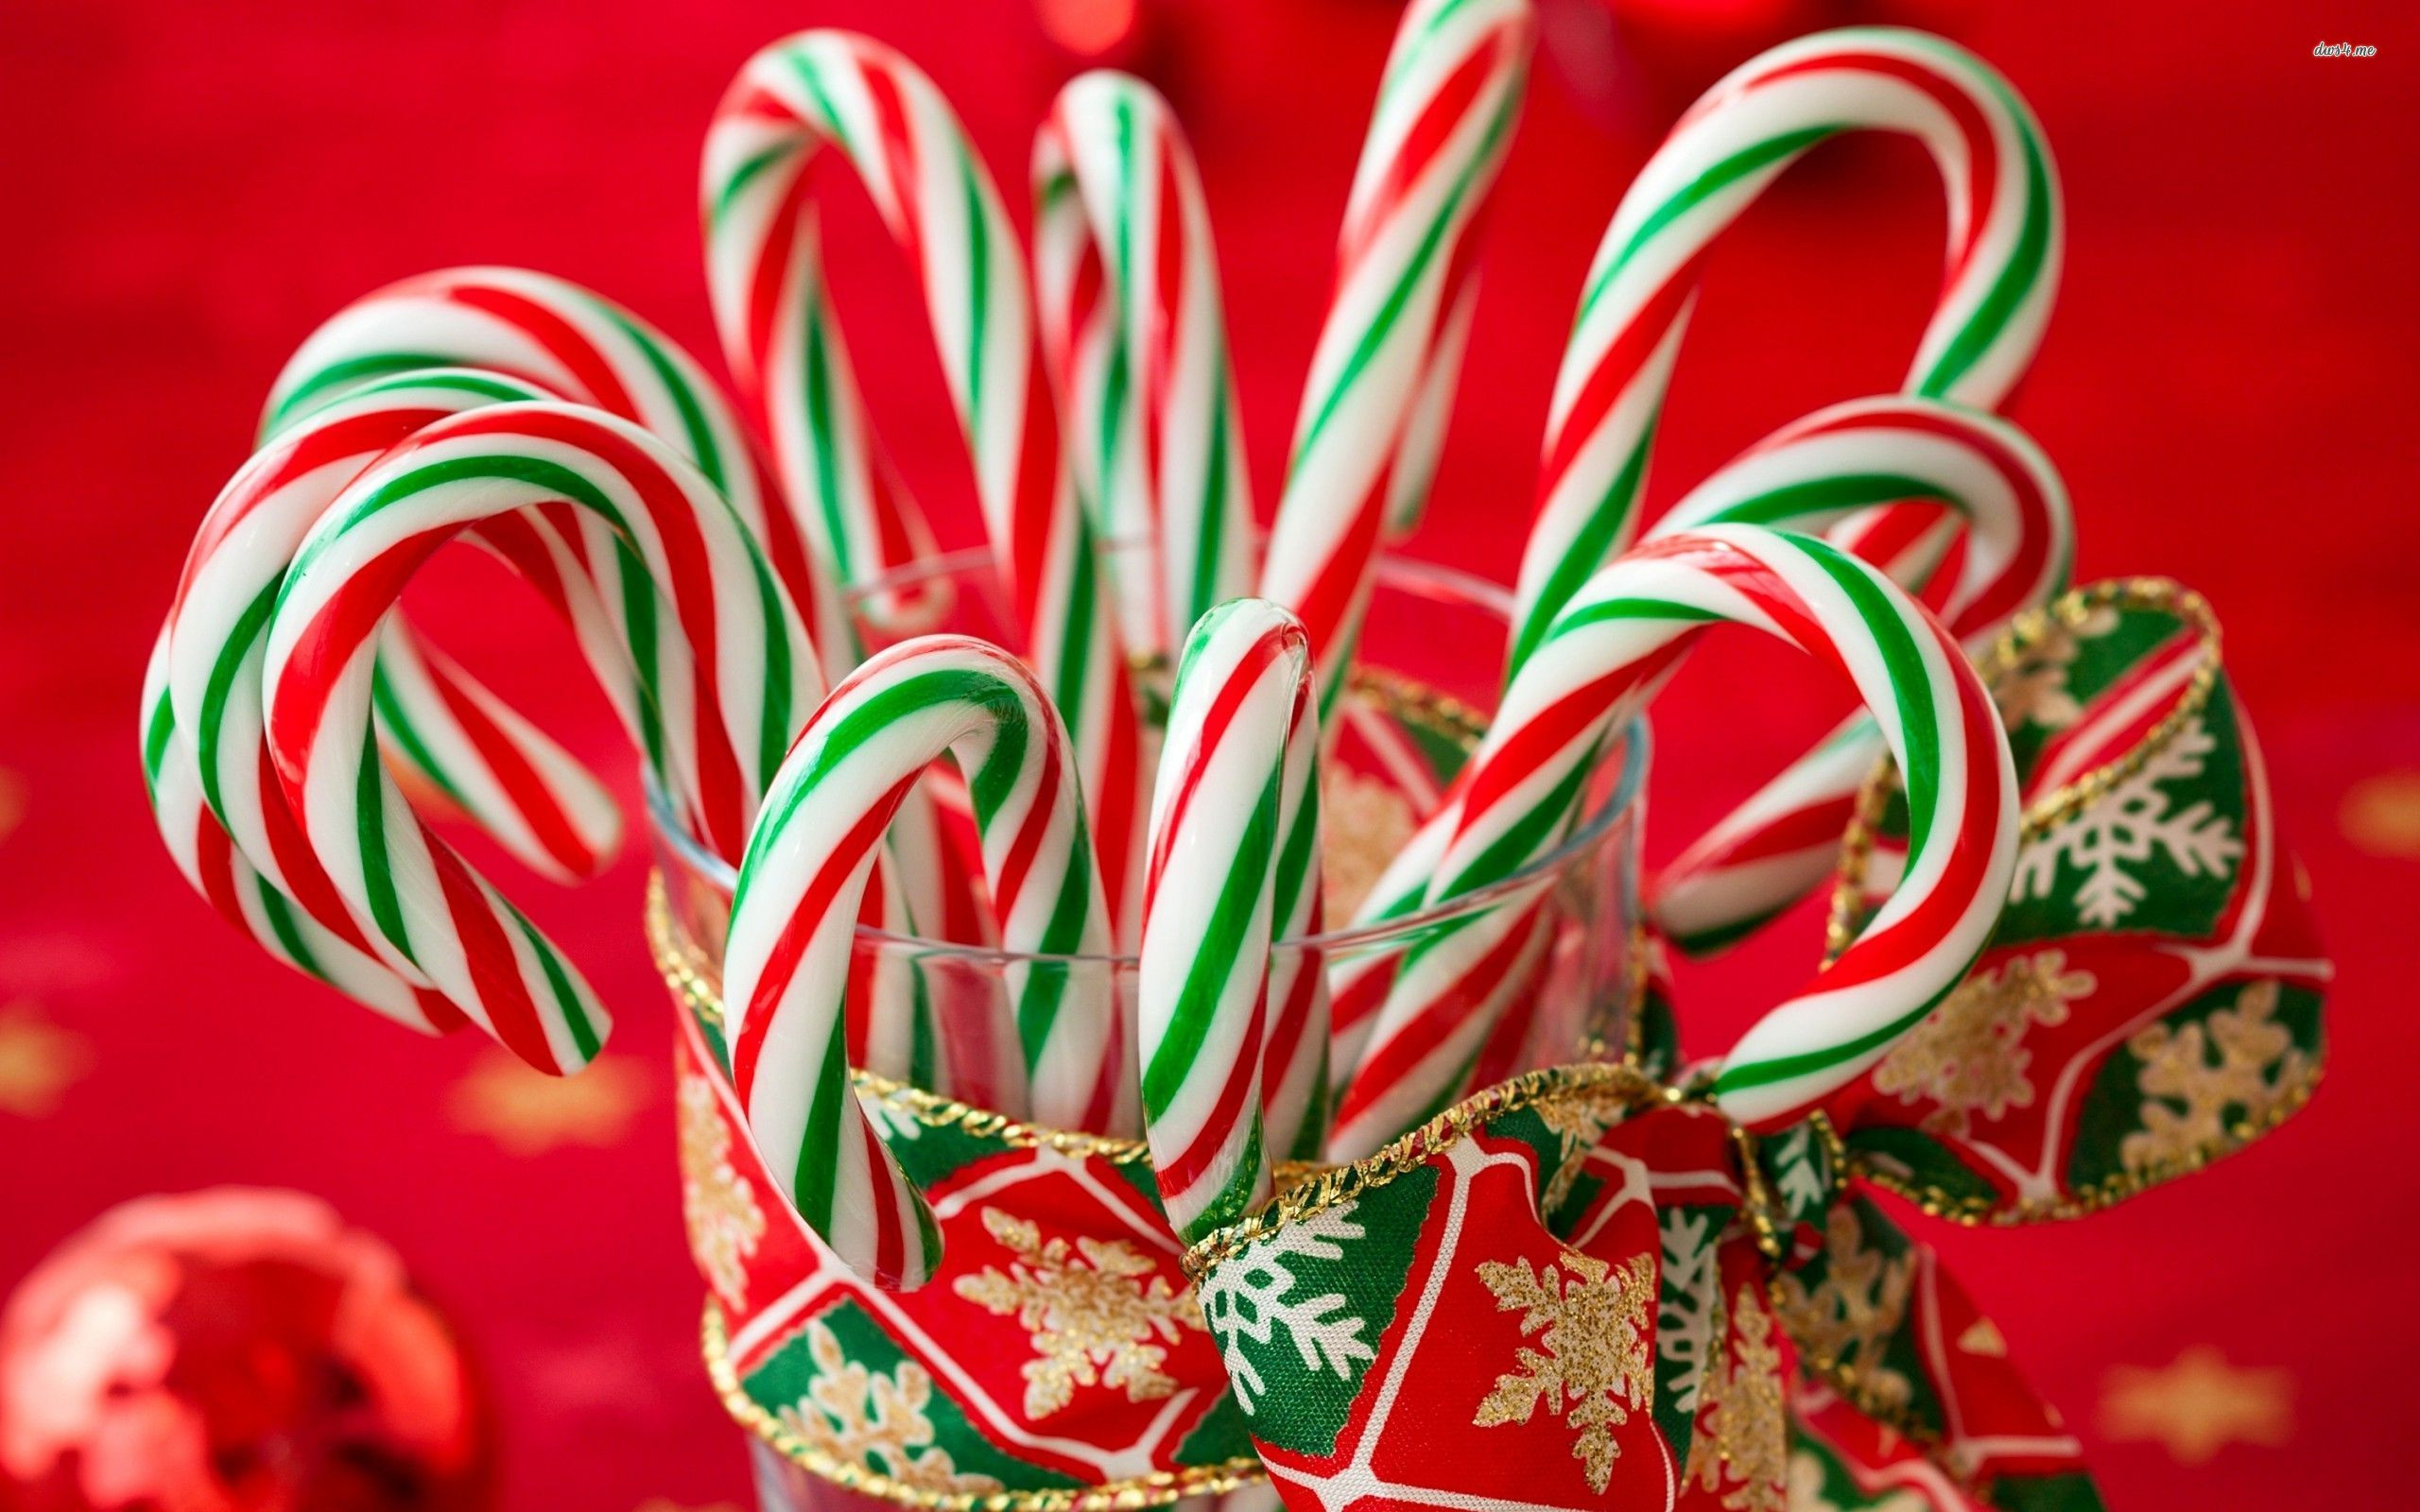 Christmas Candy Cane Images  Christmas Candy Cane Wallpaper WallpaperSafari